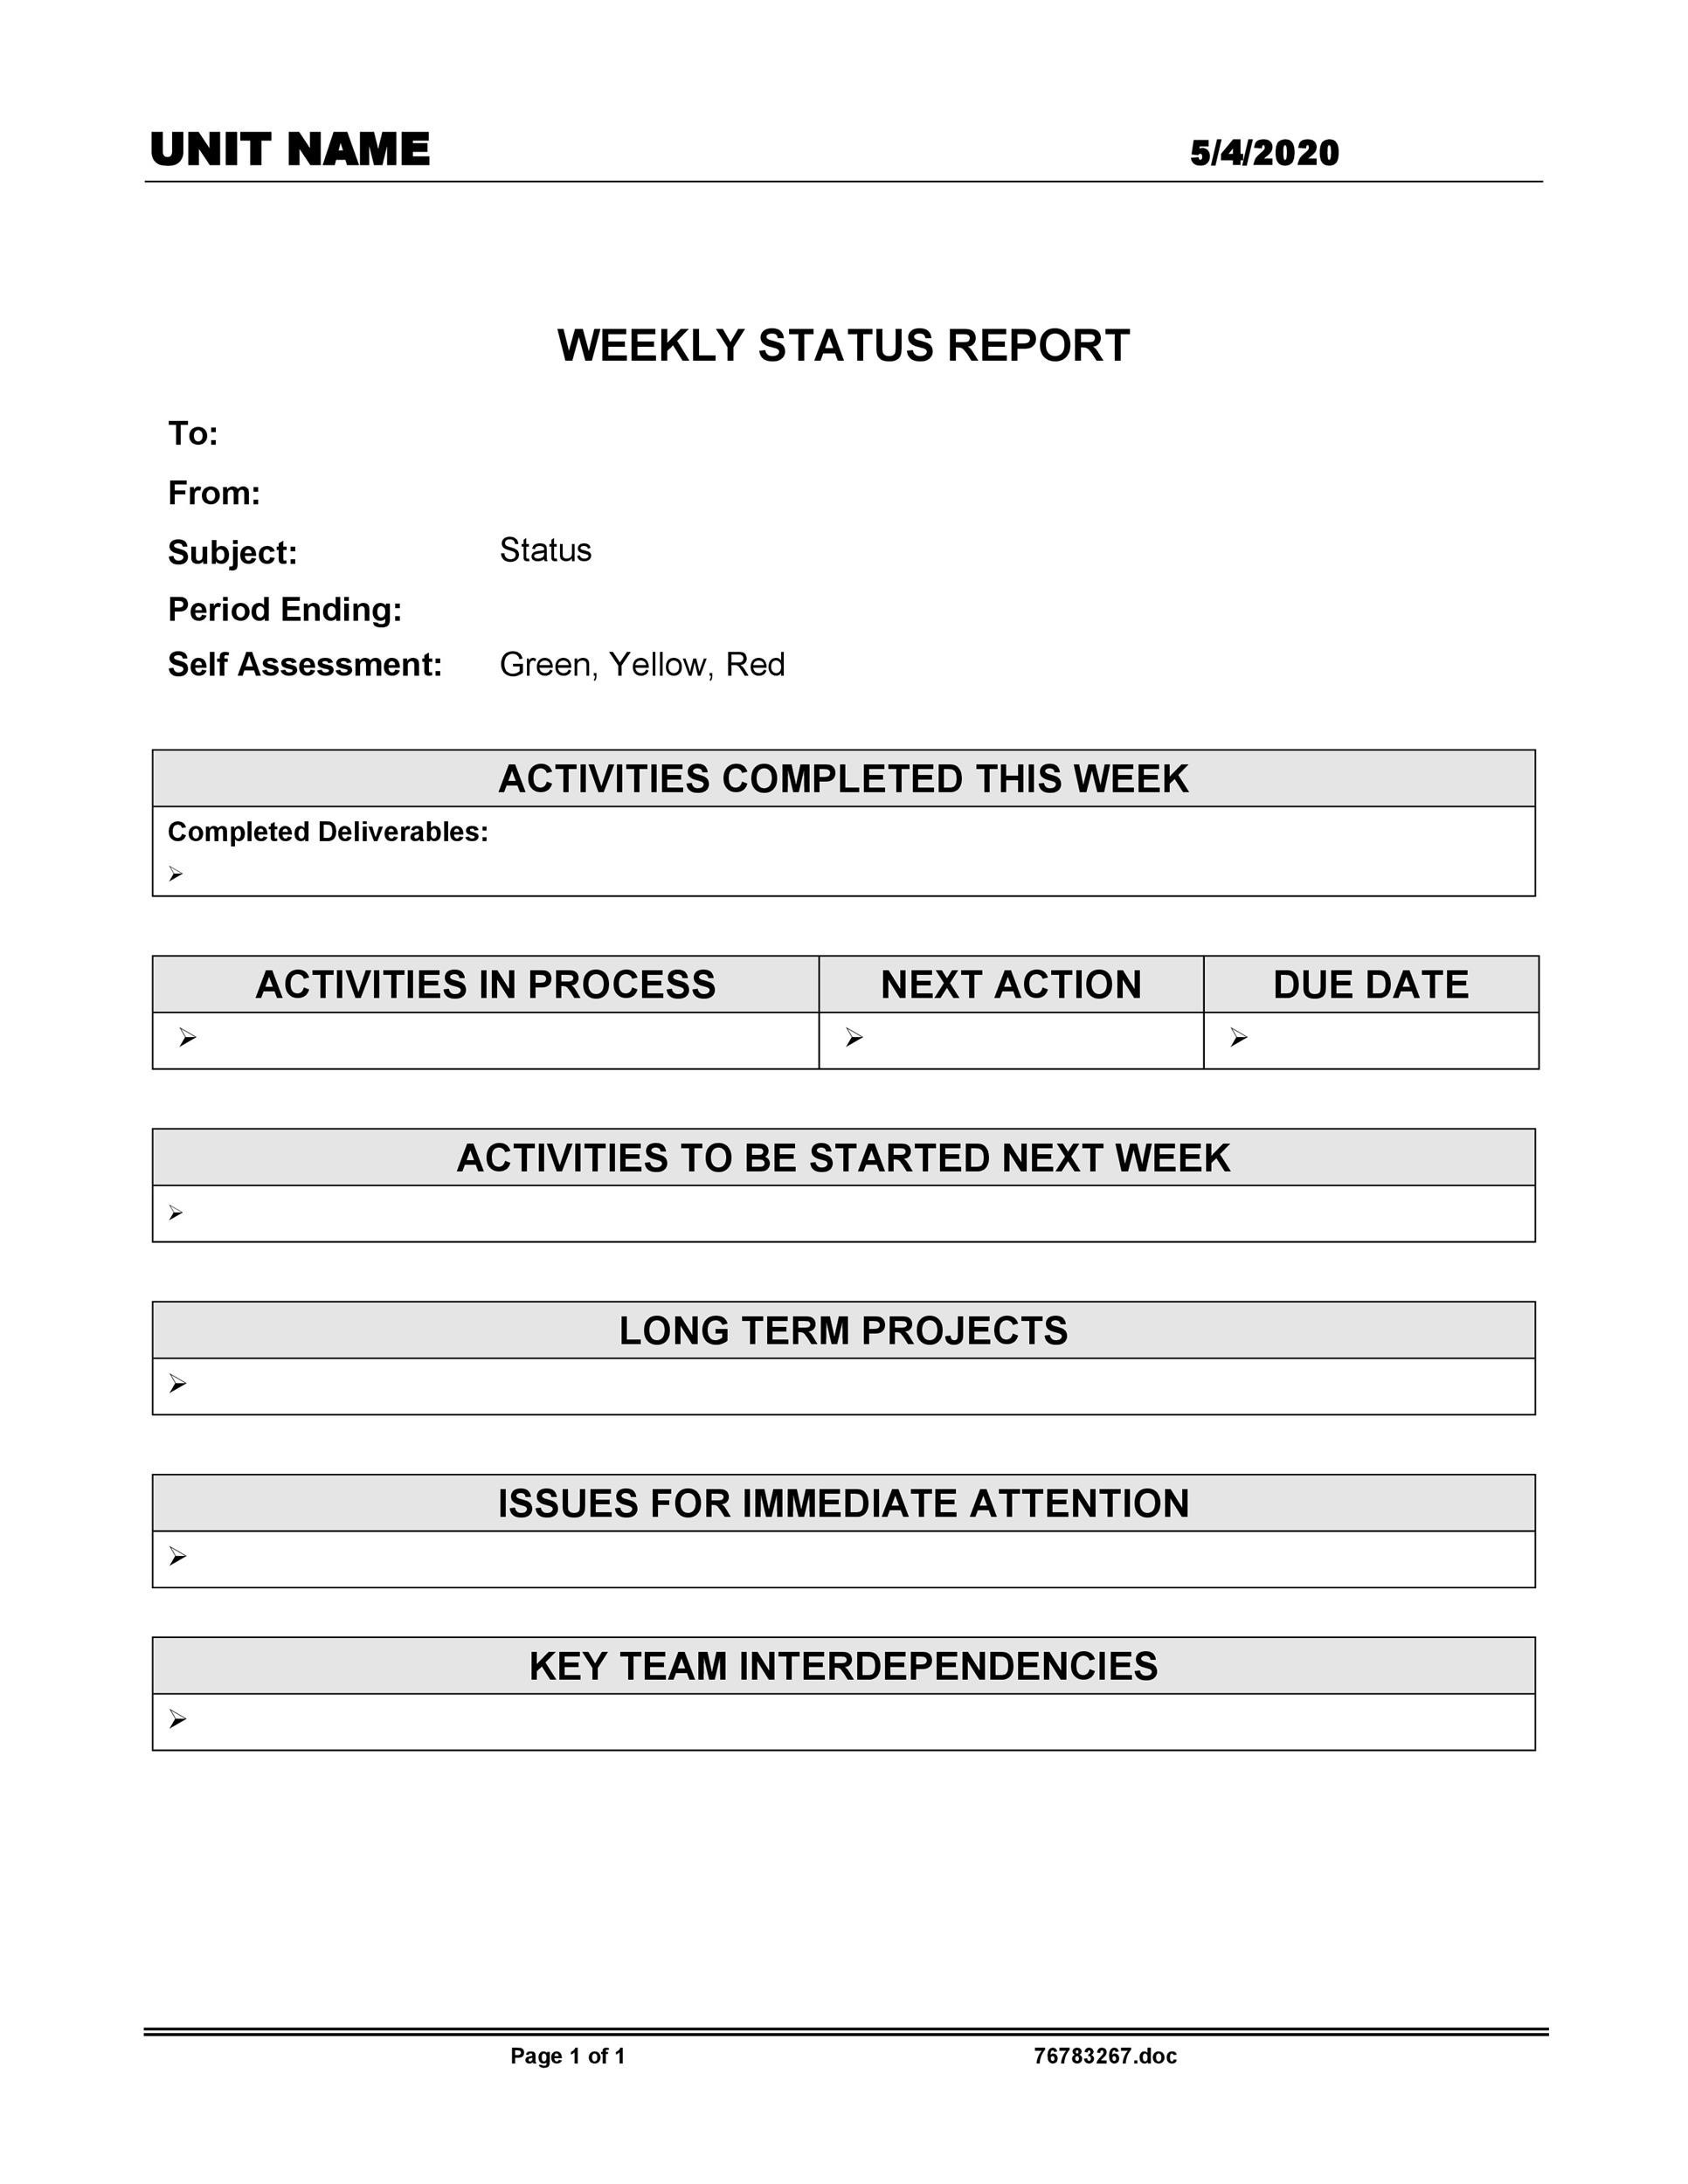 40+ Project Status Report Templates [Word, Excel, PPT] - Template Lab